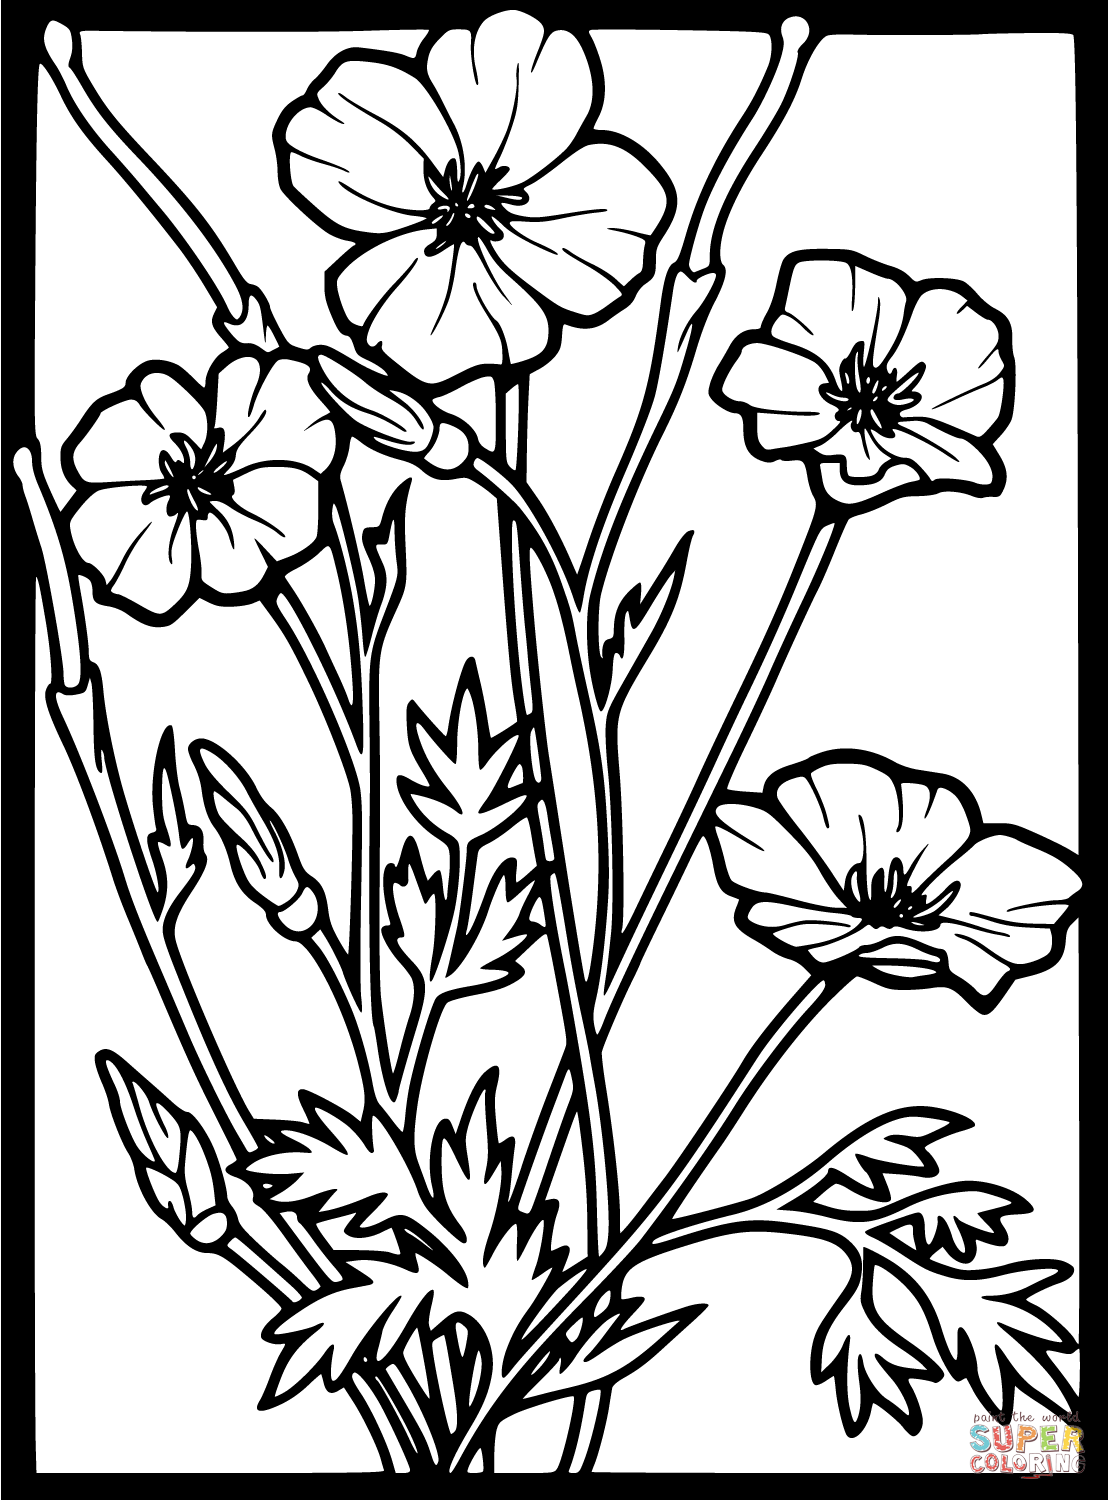 Unique Poppy Coloring Pages 9 Flowers Coloring pages Select